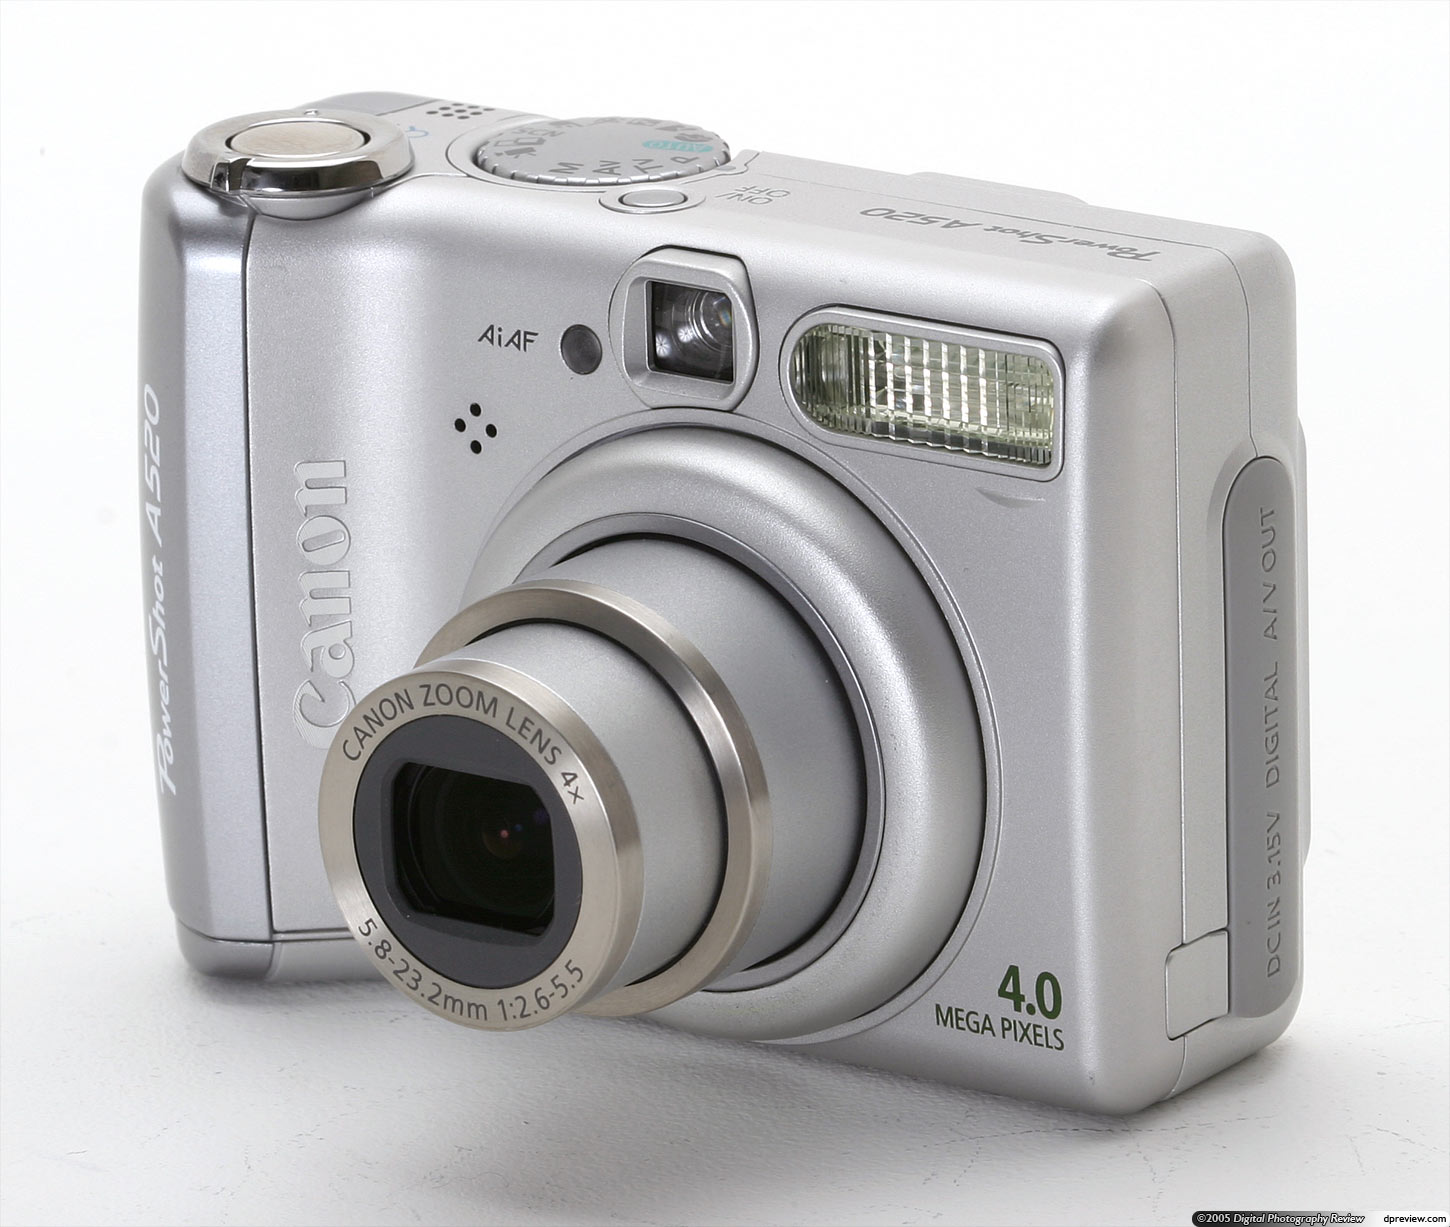 canon powershot a520 review digital photography review rh dpreview com Newest Canon Cameras PowerShot Newest Canon Cameras PowerShot